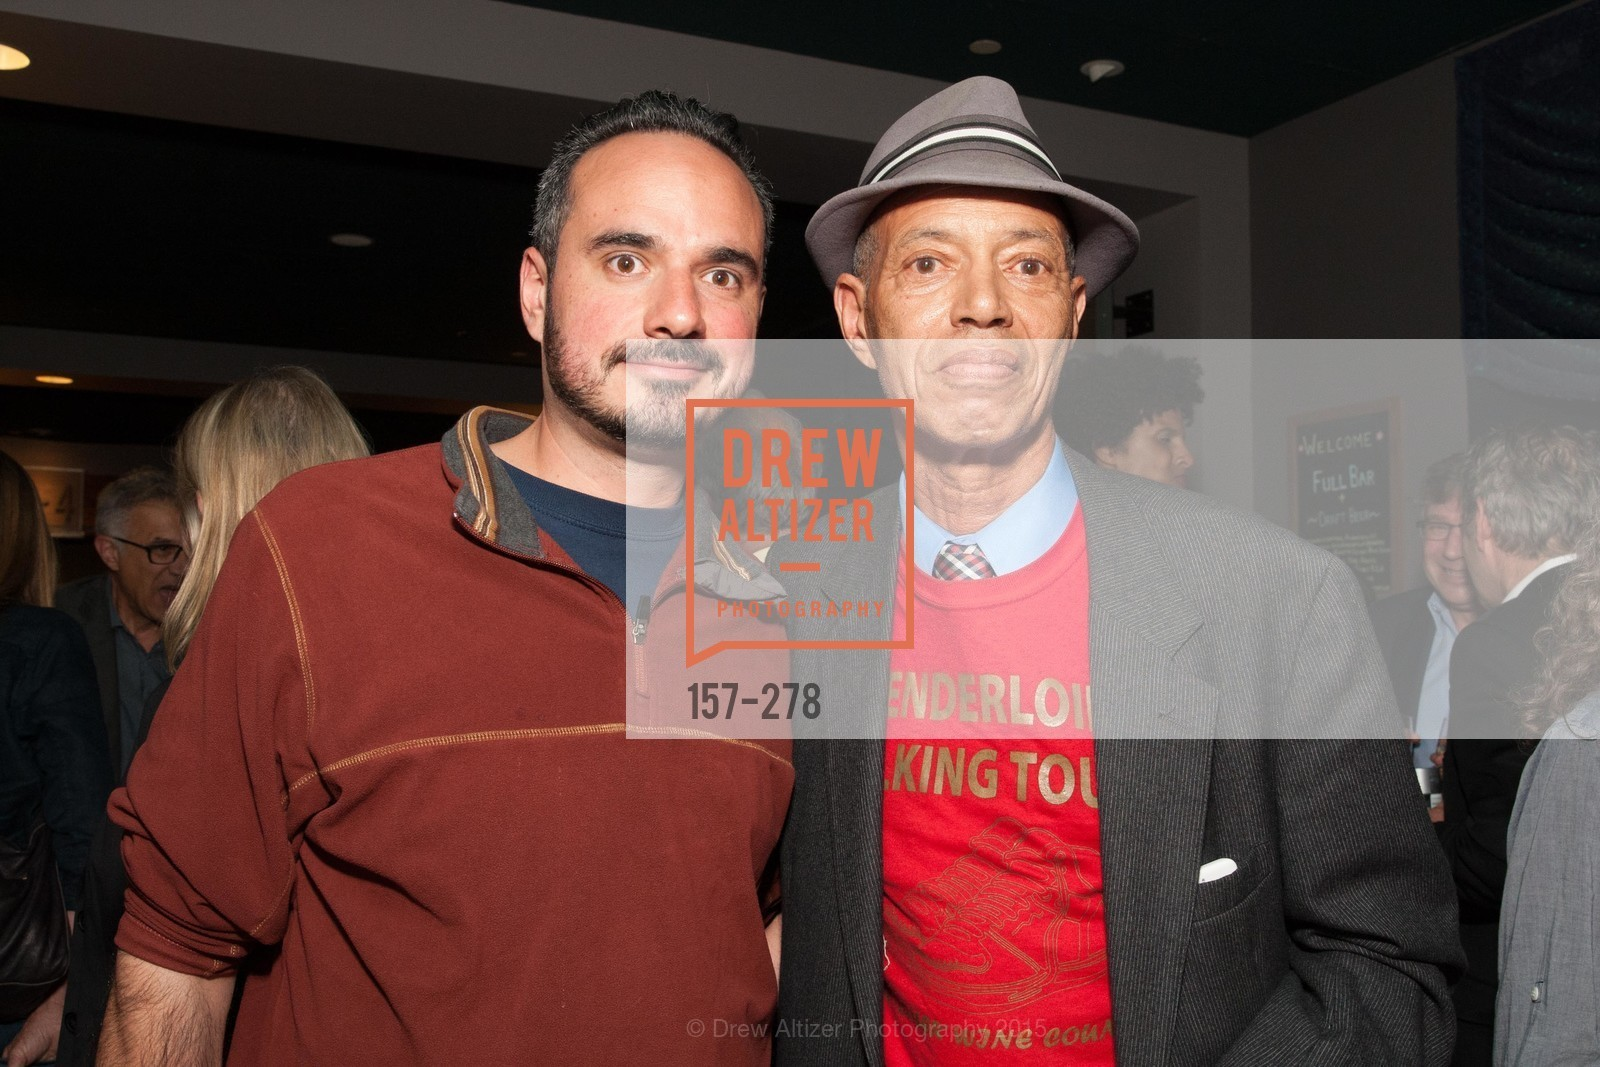 Fernando Peujals, Bel Seymour, San Francisco 2.0 Premiere, Sundance Kabuki Cinema, September 3rd, 2015,Drew Altizer, Drew Altizer Photography, full-service agency, private events, San Francisco photographer, photographer california